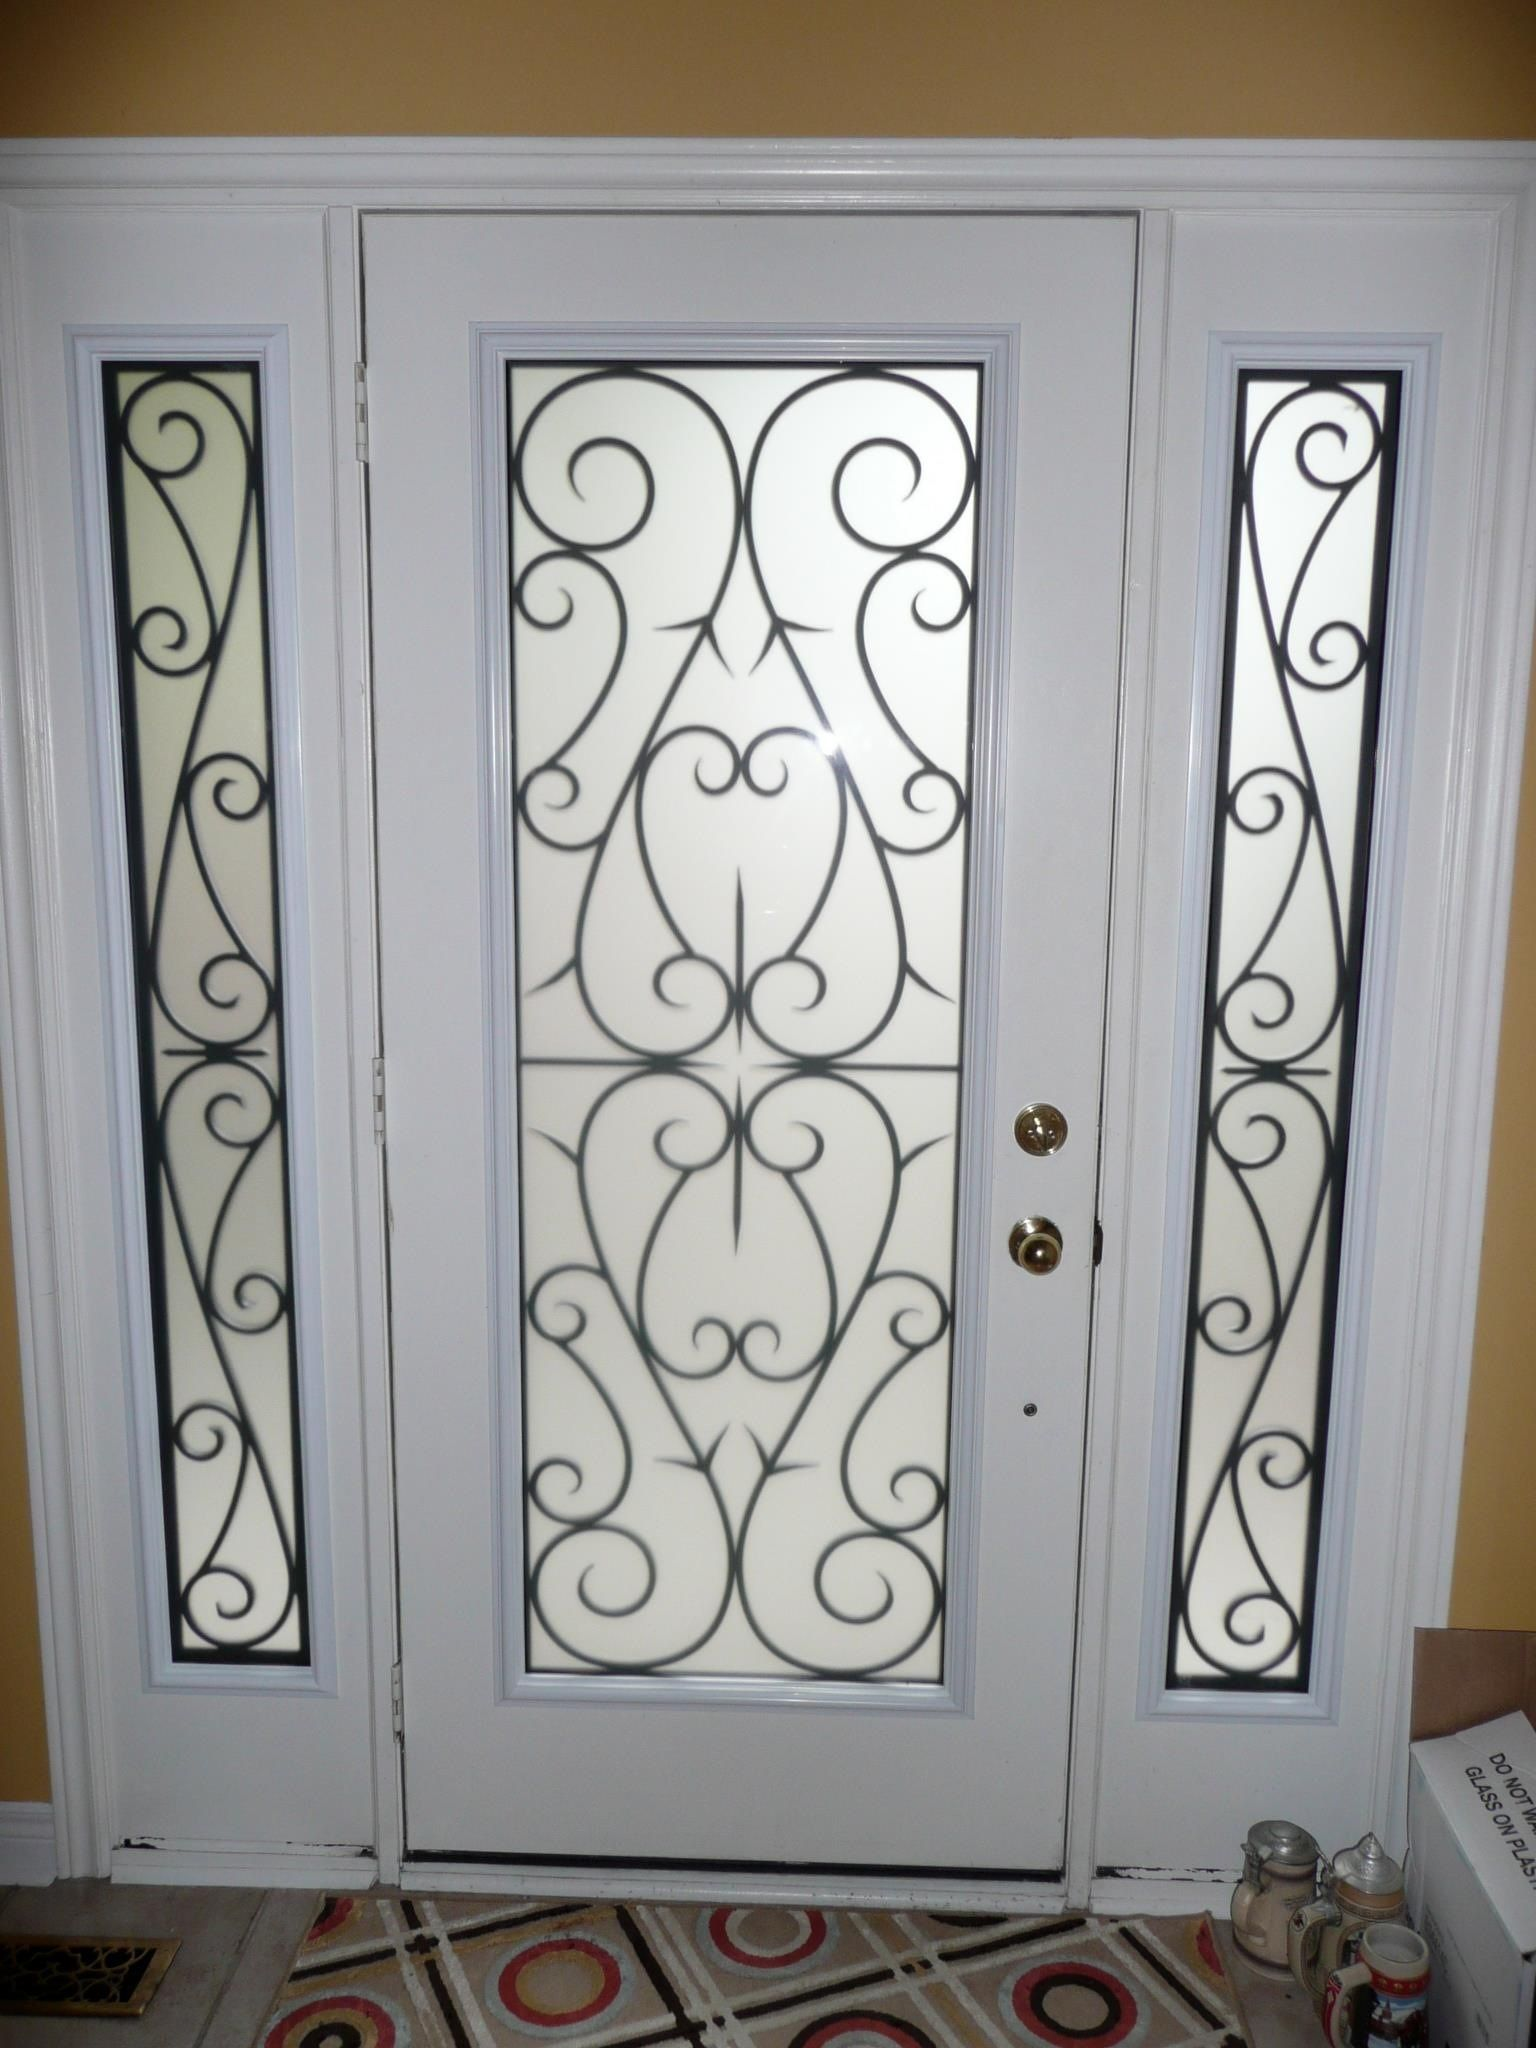 Le Meilleur Decorative Glass Inserts For Doors Wrought Iron Ce Mois Ci